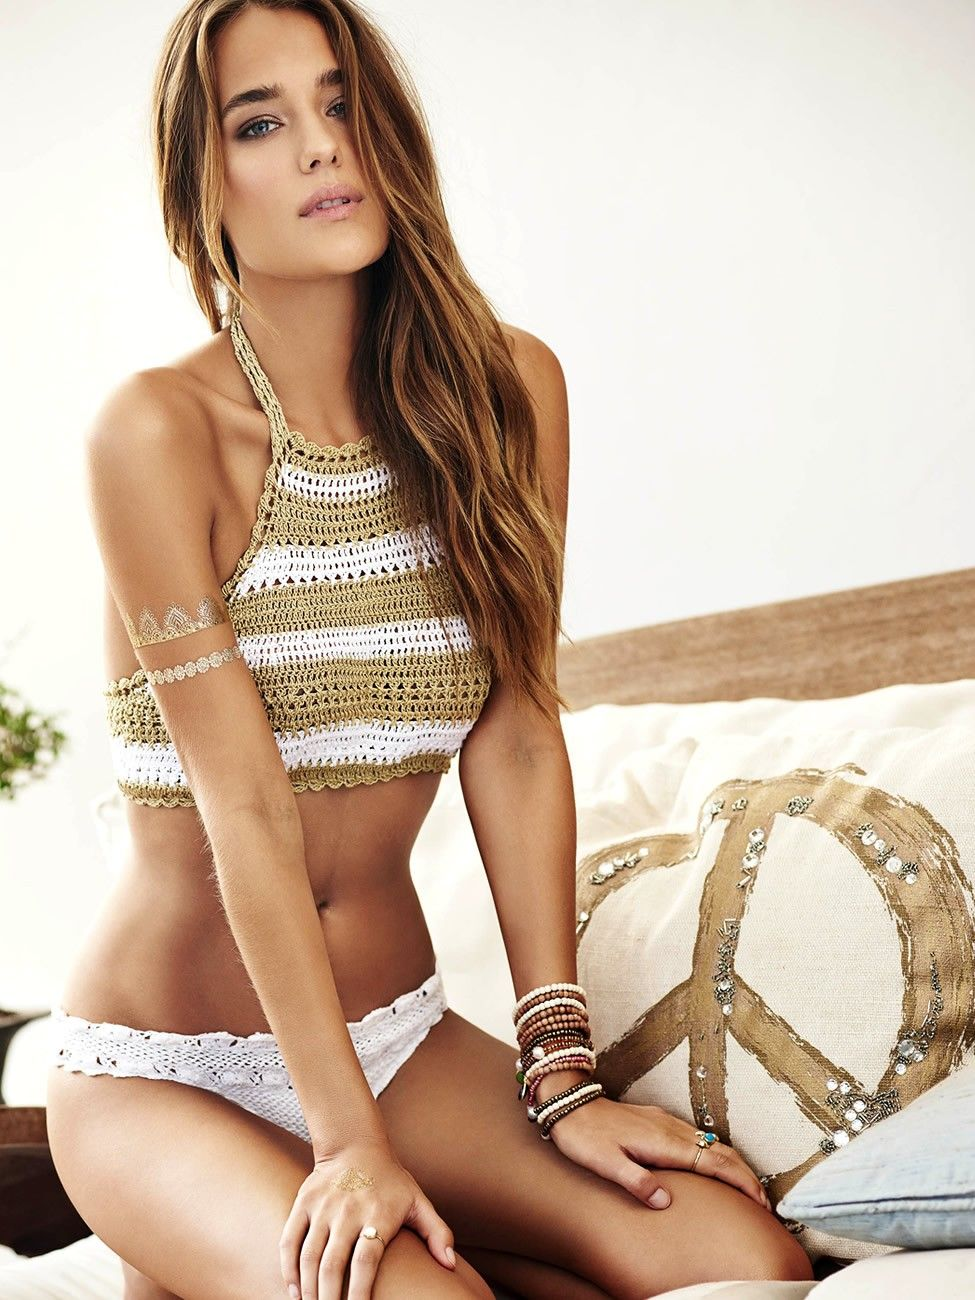 d03cabbcda From the PilyQ 2015 Bikini Collection  Lux Crochet bikini (LUX-183H-LUX-283).  Eye-catching Blair halter bikini top has crochet detailing and removable ...